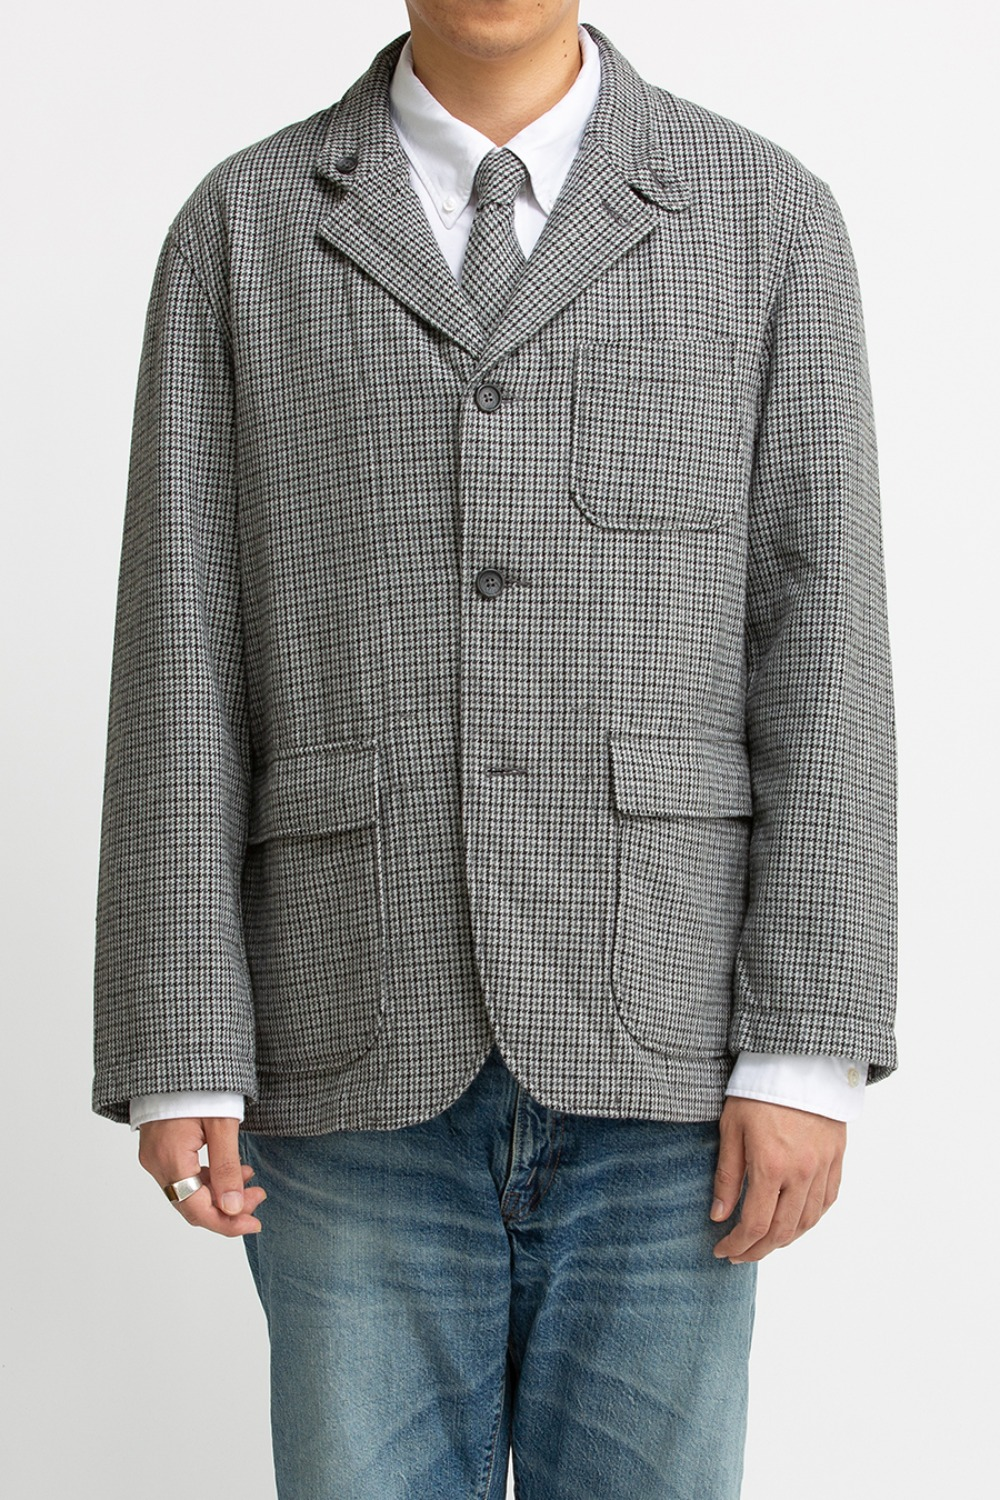 LOITER JACKET GREY WOOL POLY GUNCLUB